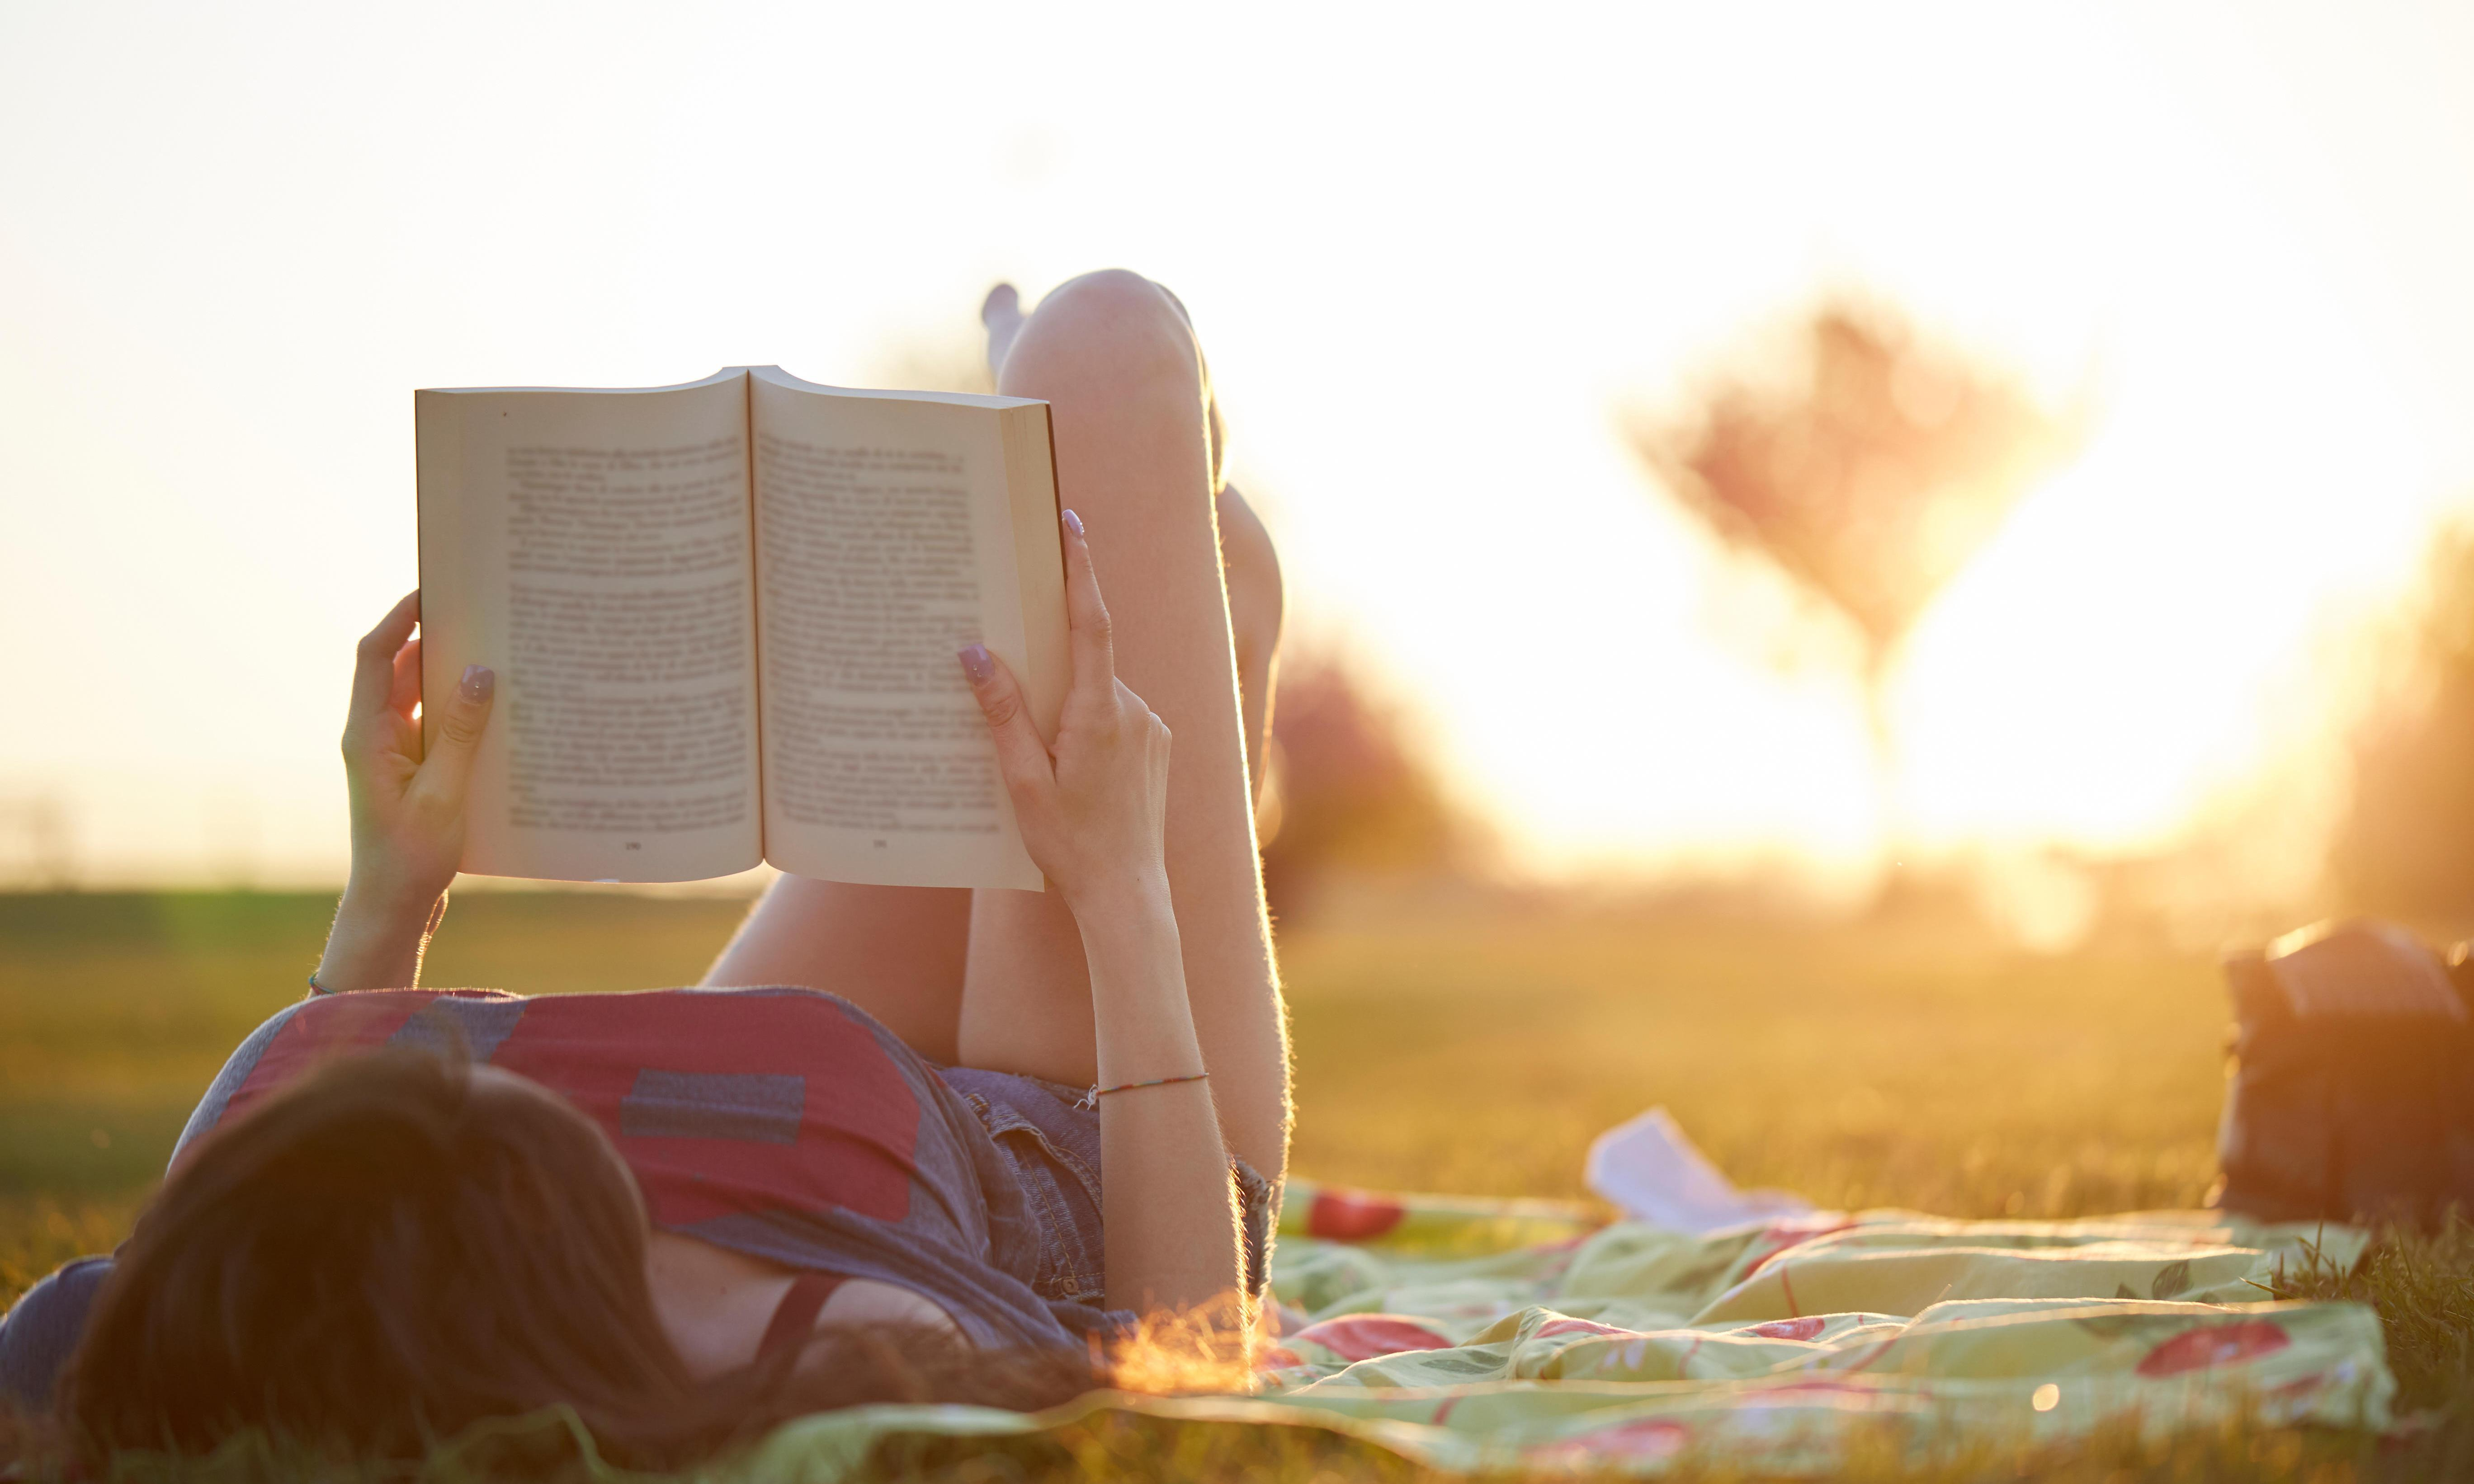 Want to read more? Choose an extremely long book